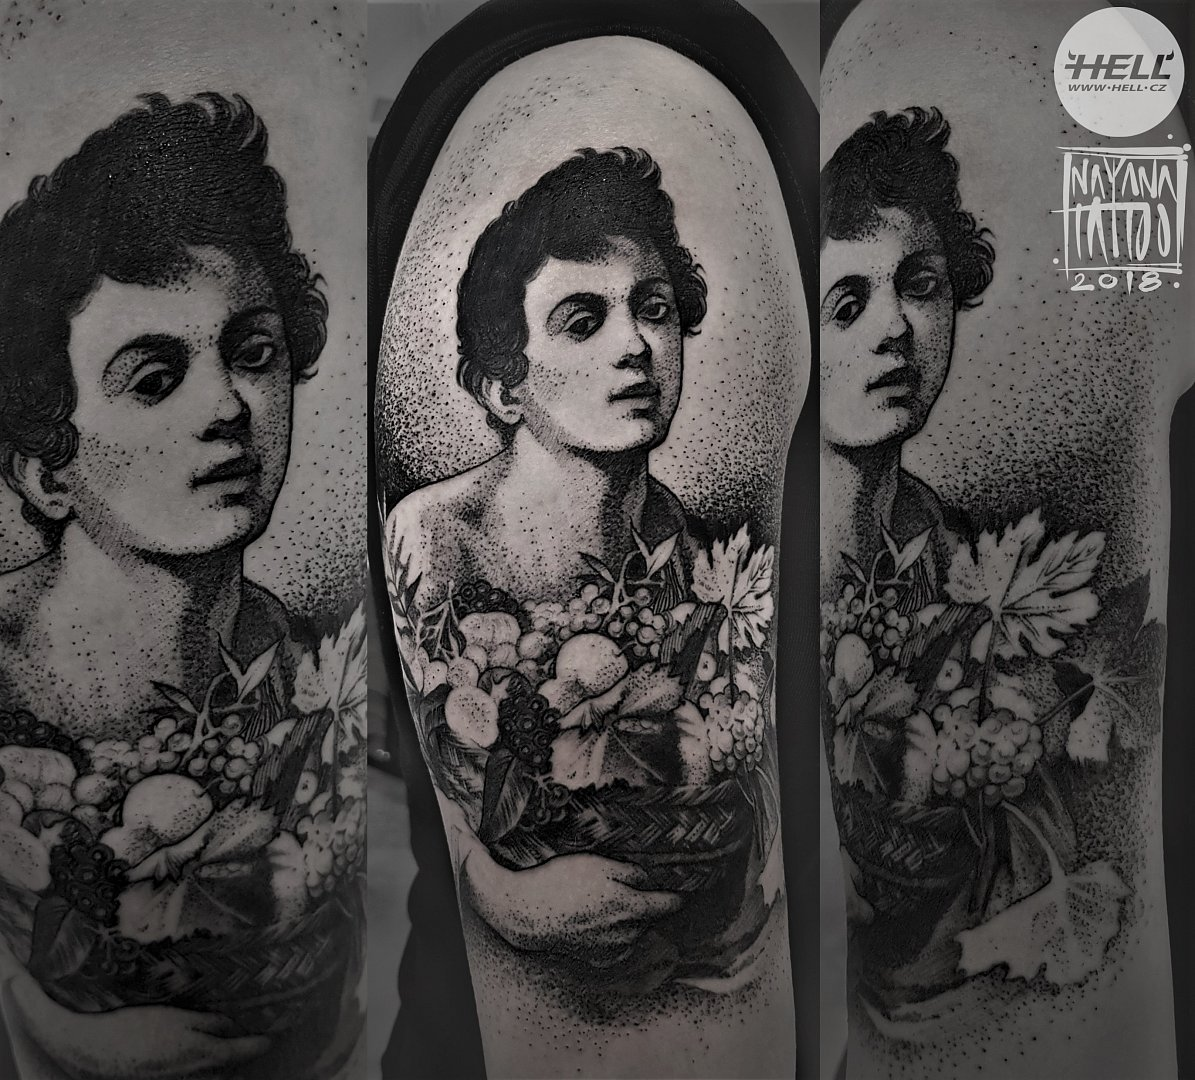 caravaggio-tribute-nayana-tattoo